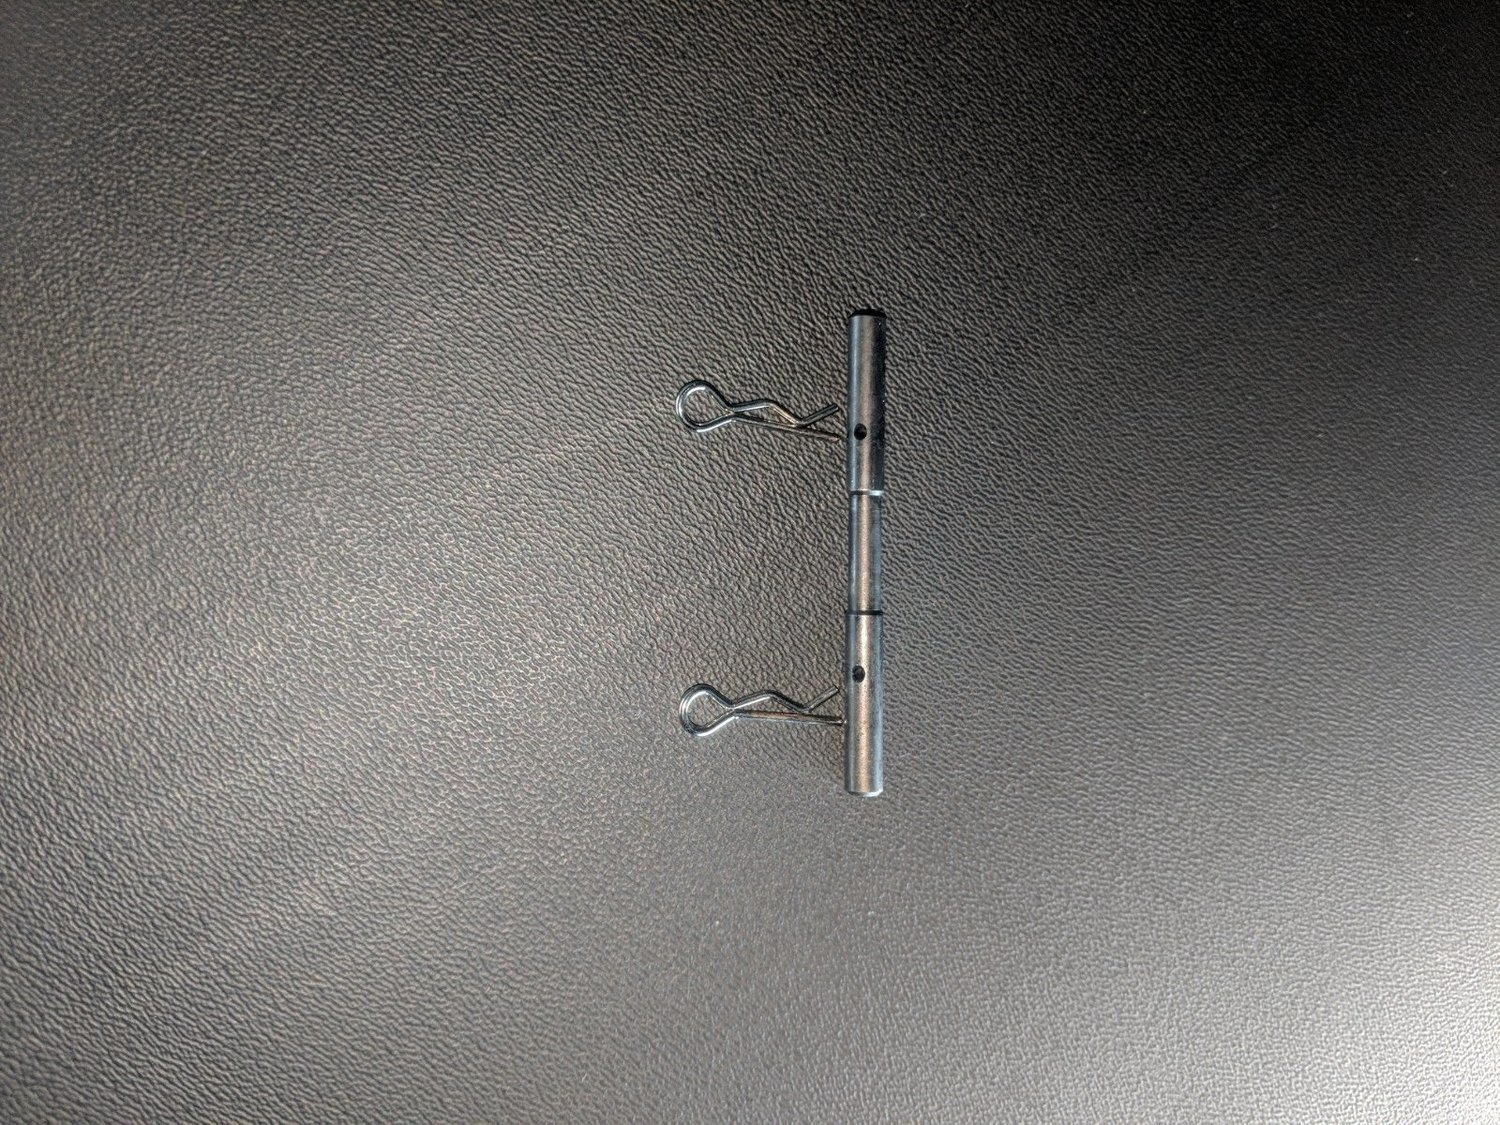 T91 New Improved Handguard Lock Pin